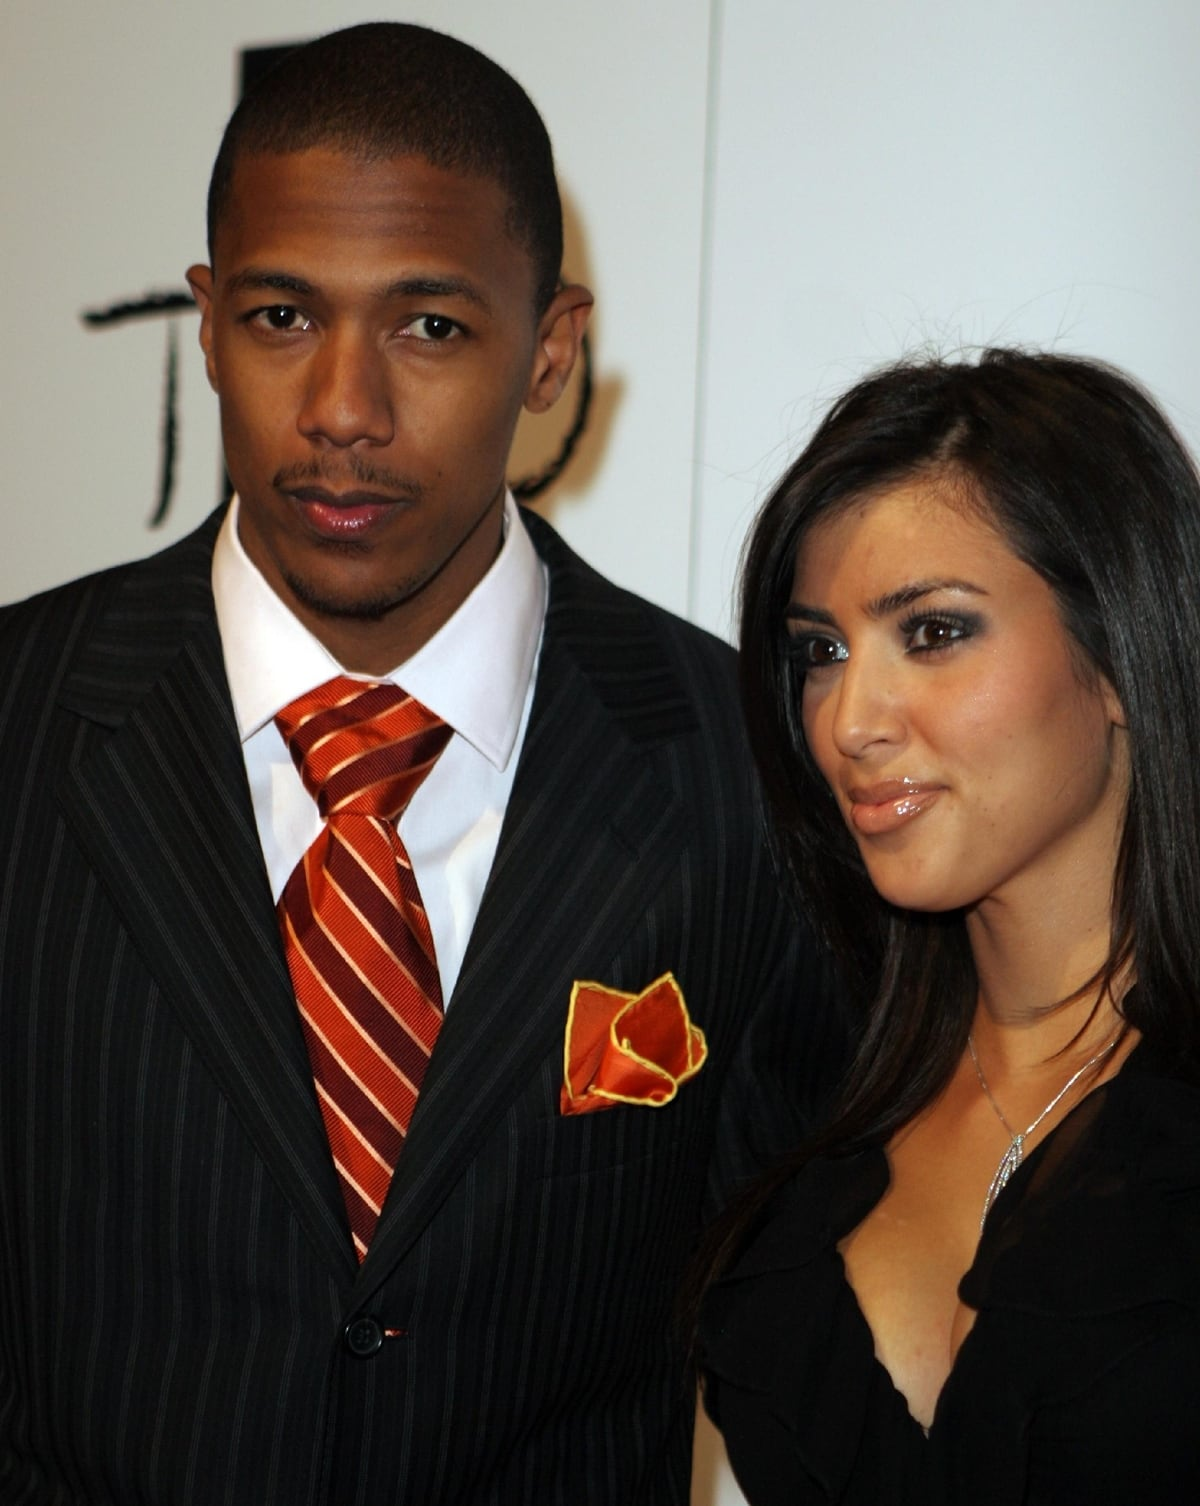 Nick Cannon says they split after Kim Kardashian lied to him about the existence of her sex tape with Ray J